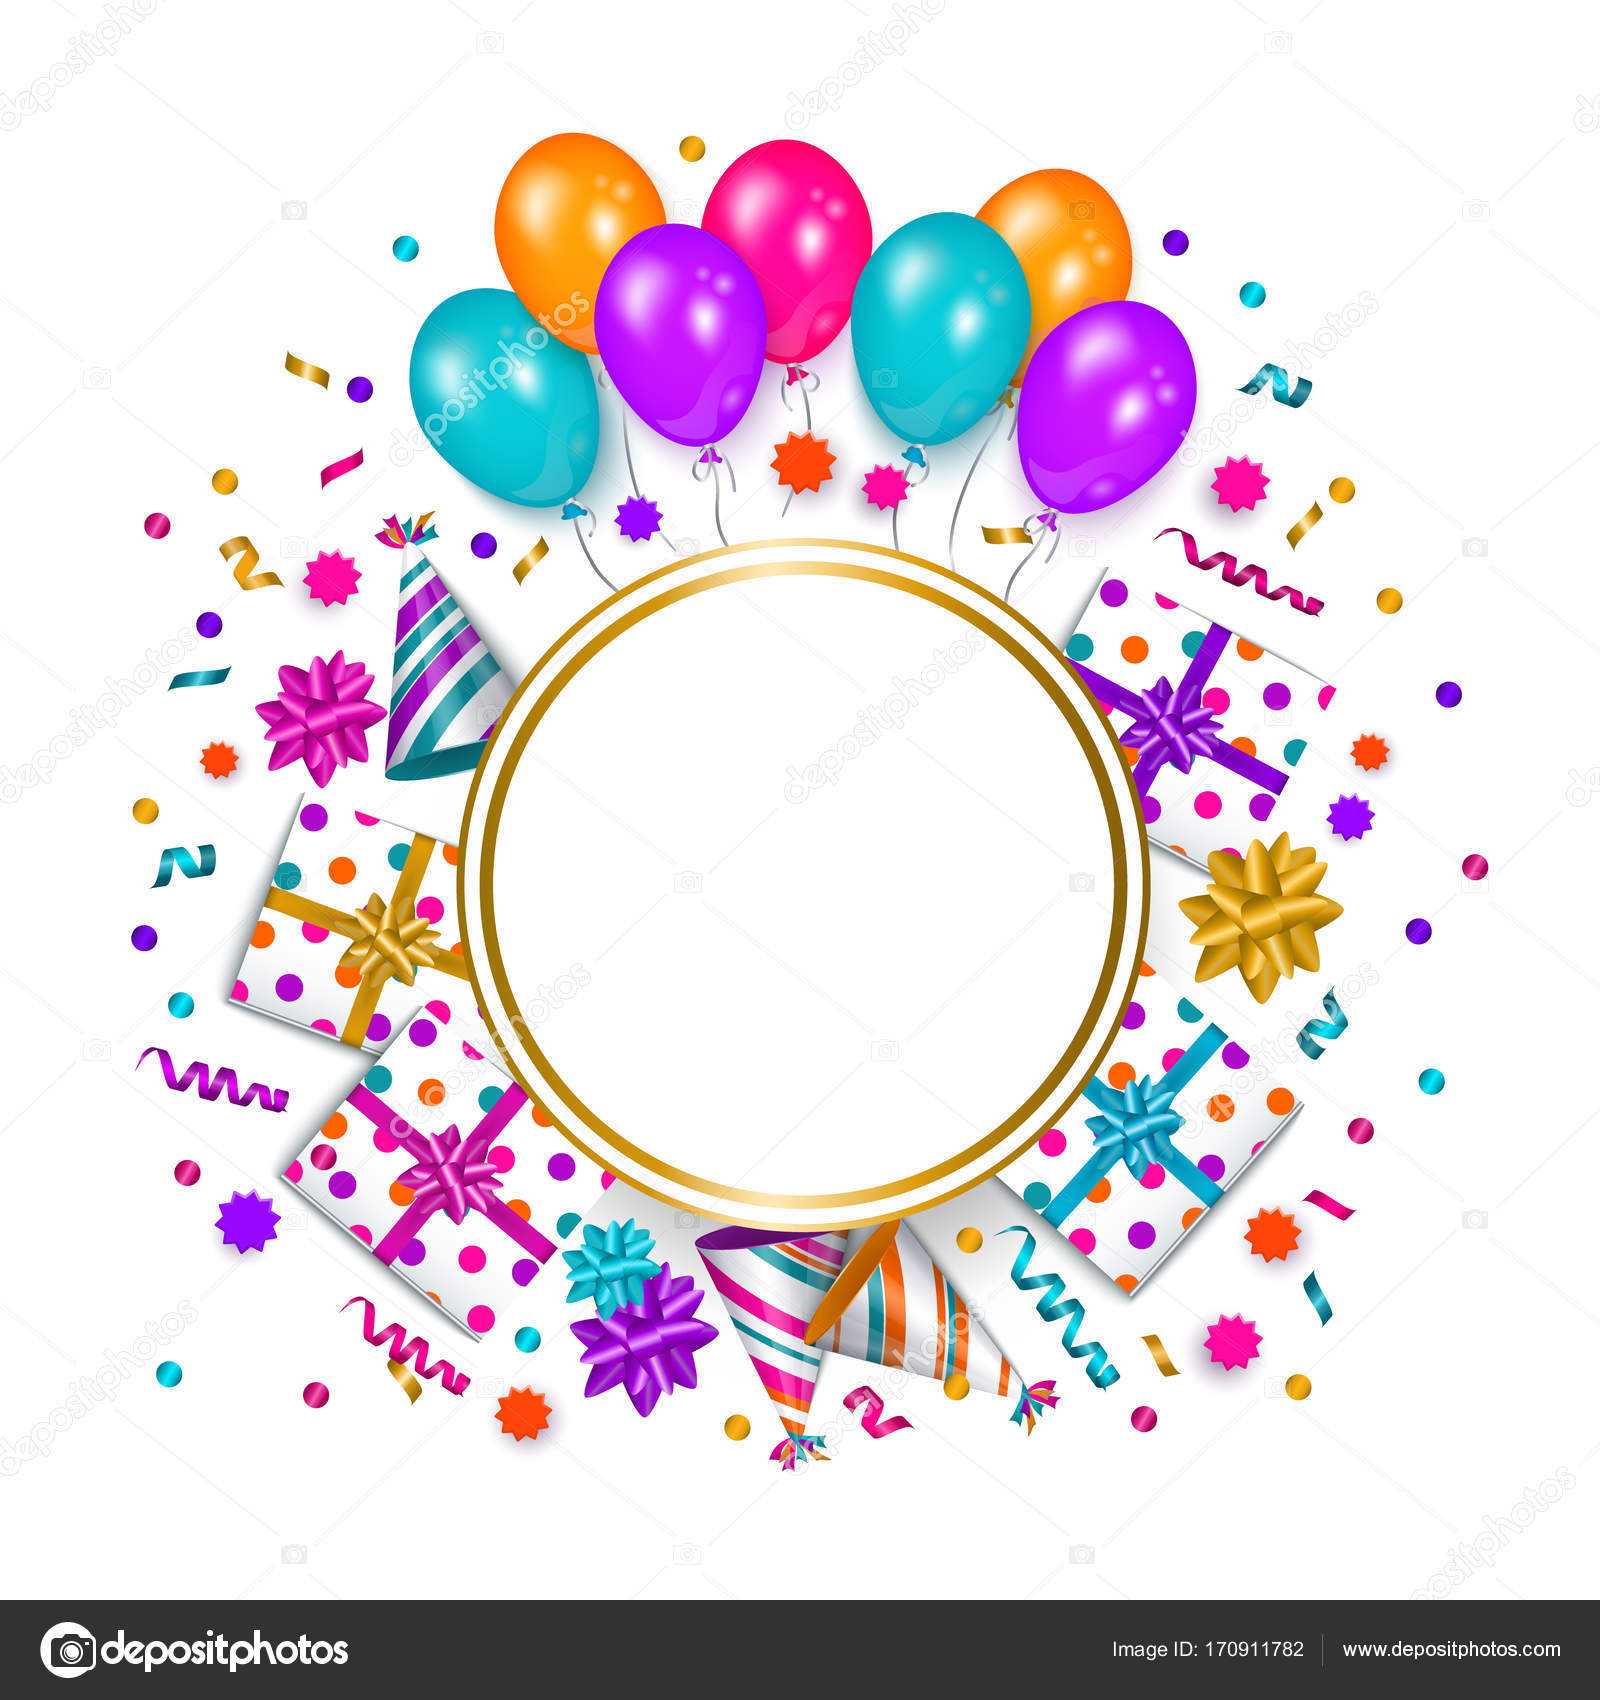 Birthday greeting card banner with space for text stock vector square banner poster greeting card frame birthday party object with empty round space for text vector illustration isolated on white background m4hsunfo